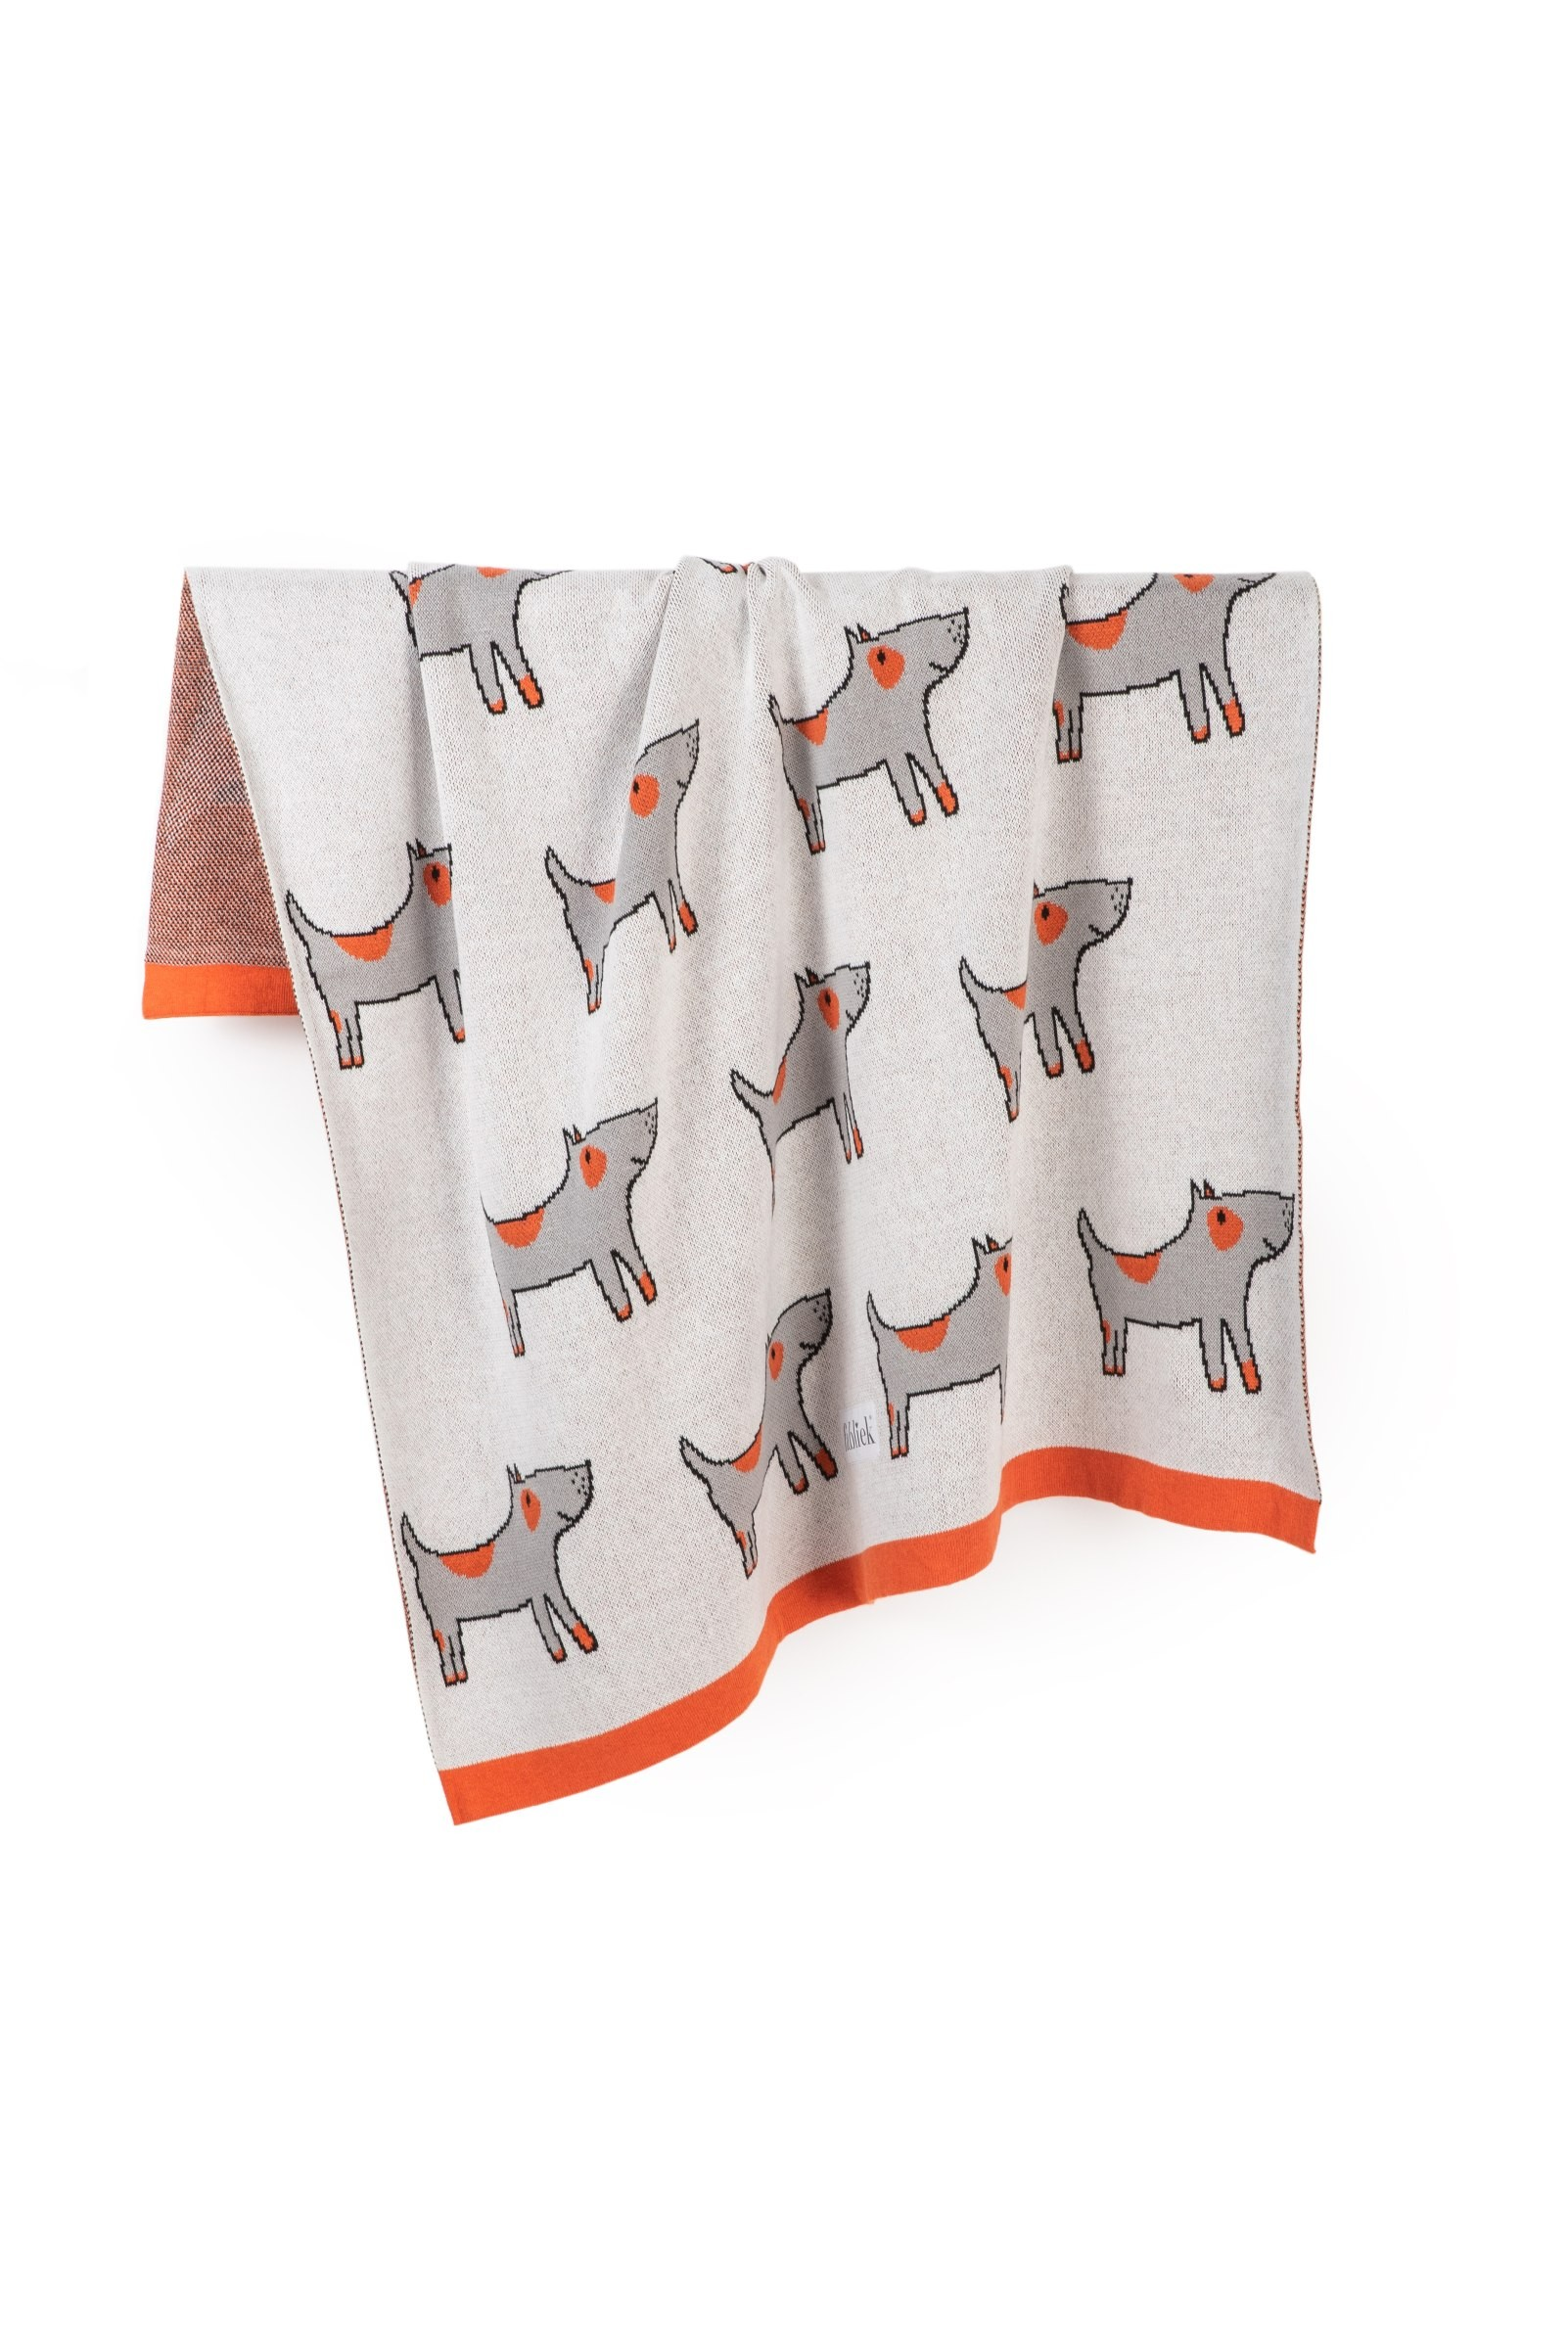 COPERTA SPOTTED DOGS 80x100...